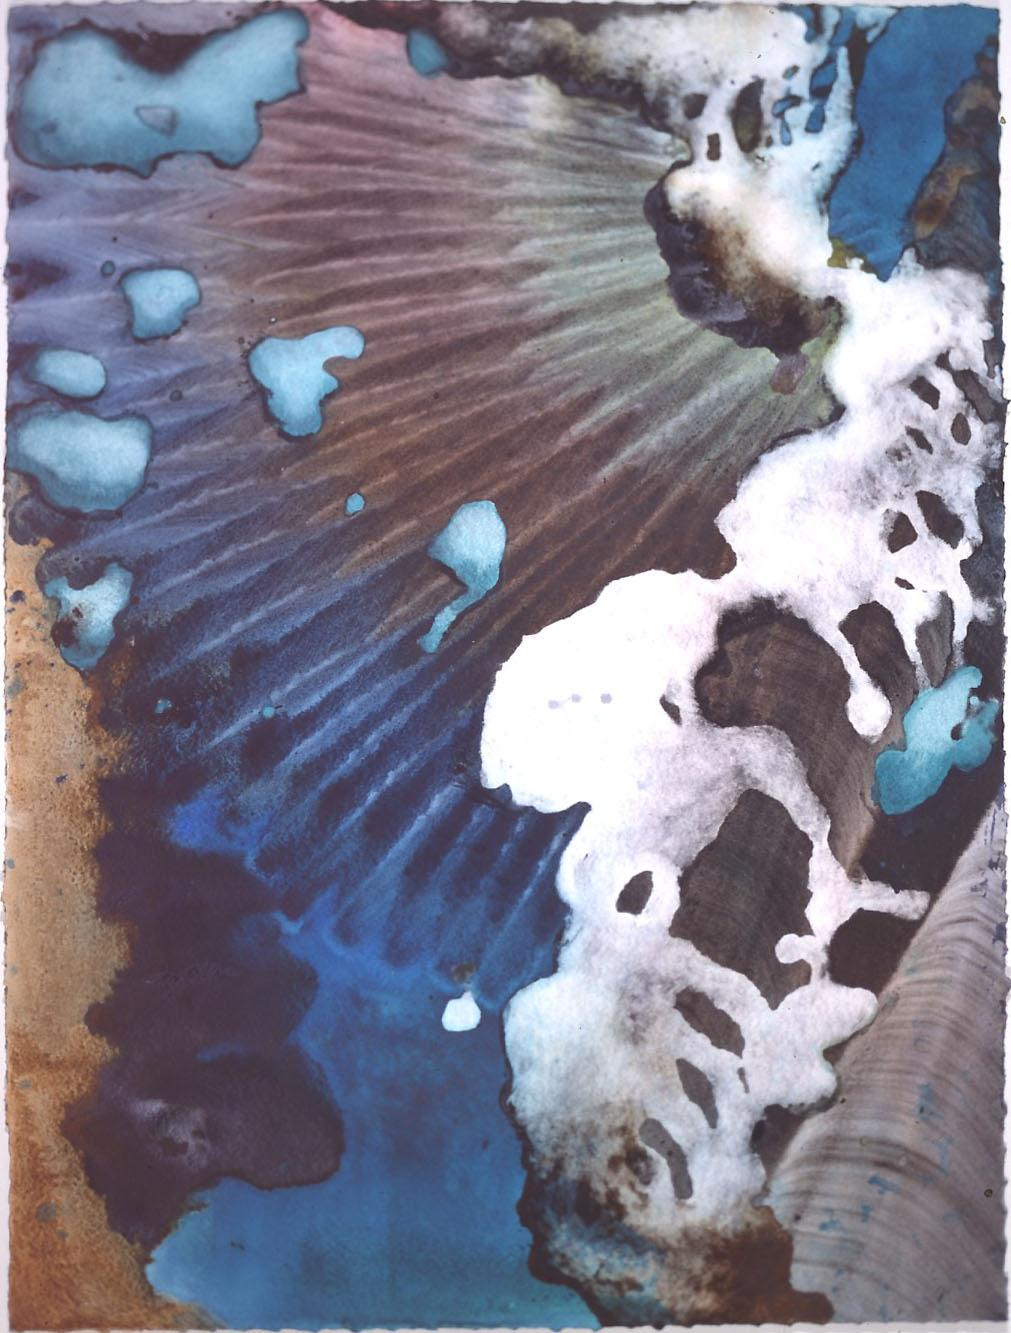 """""""Turquoise Floating"""" 1999, Turquoise Floating Series, acrylic on paper, 42 x 32 inches (107 x 81 cm)."""